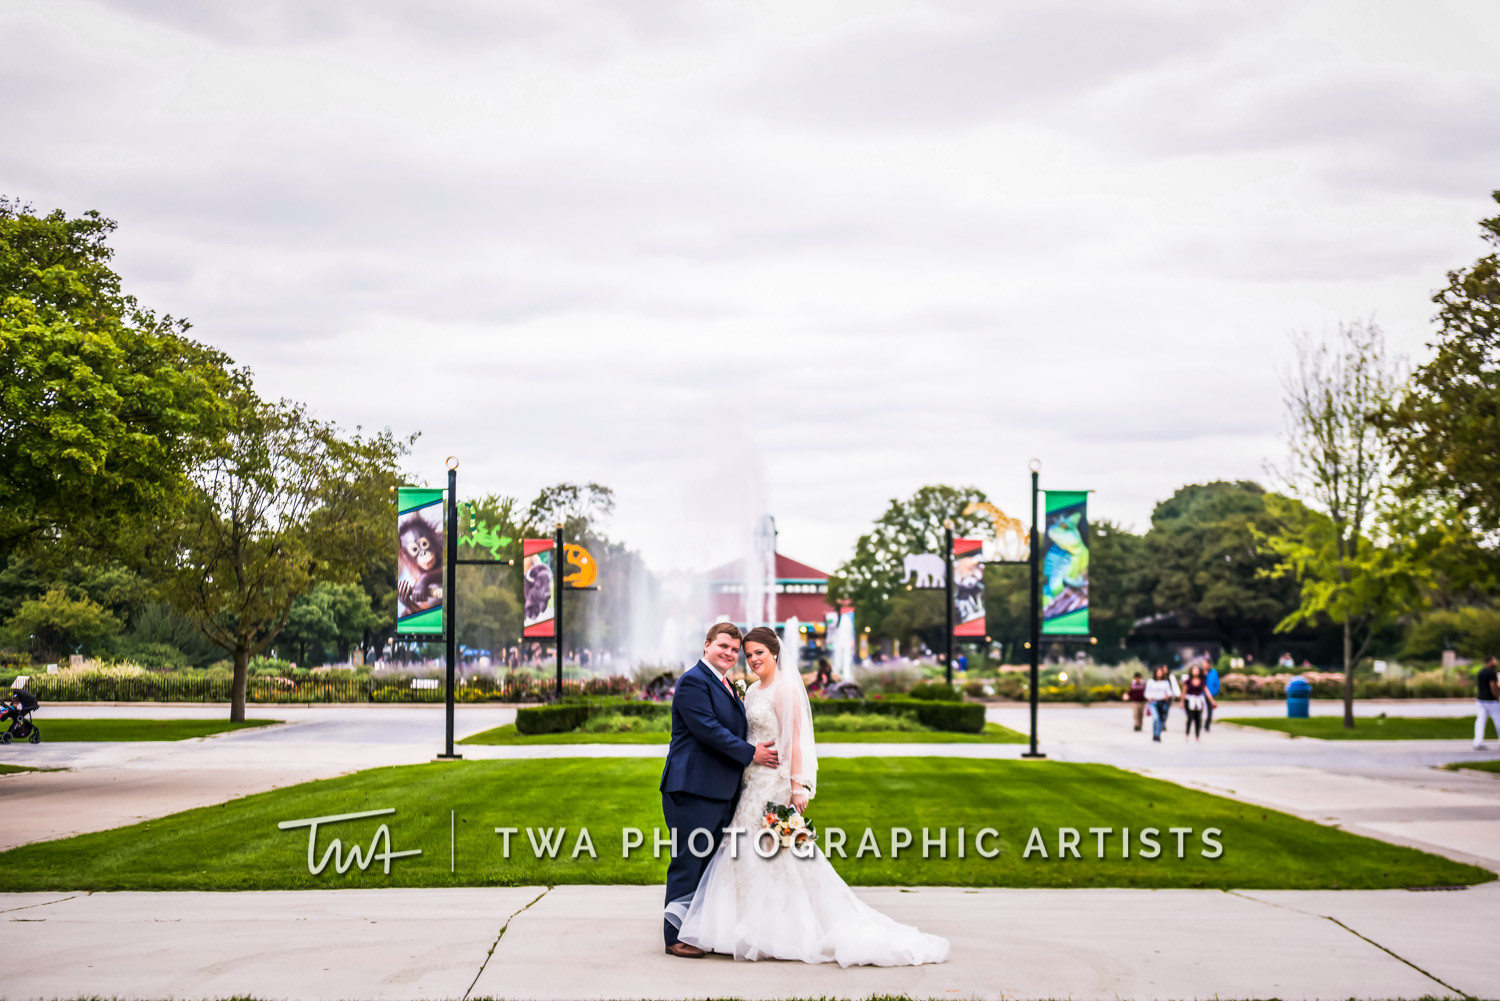 Chicago-Wedding-Photographer-TWA-Photographic-Artists-Brookfield-Zoo_Chiluski_Roach_ZZ_TL-0321